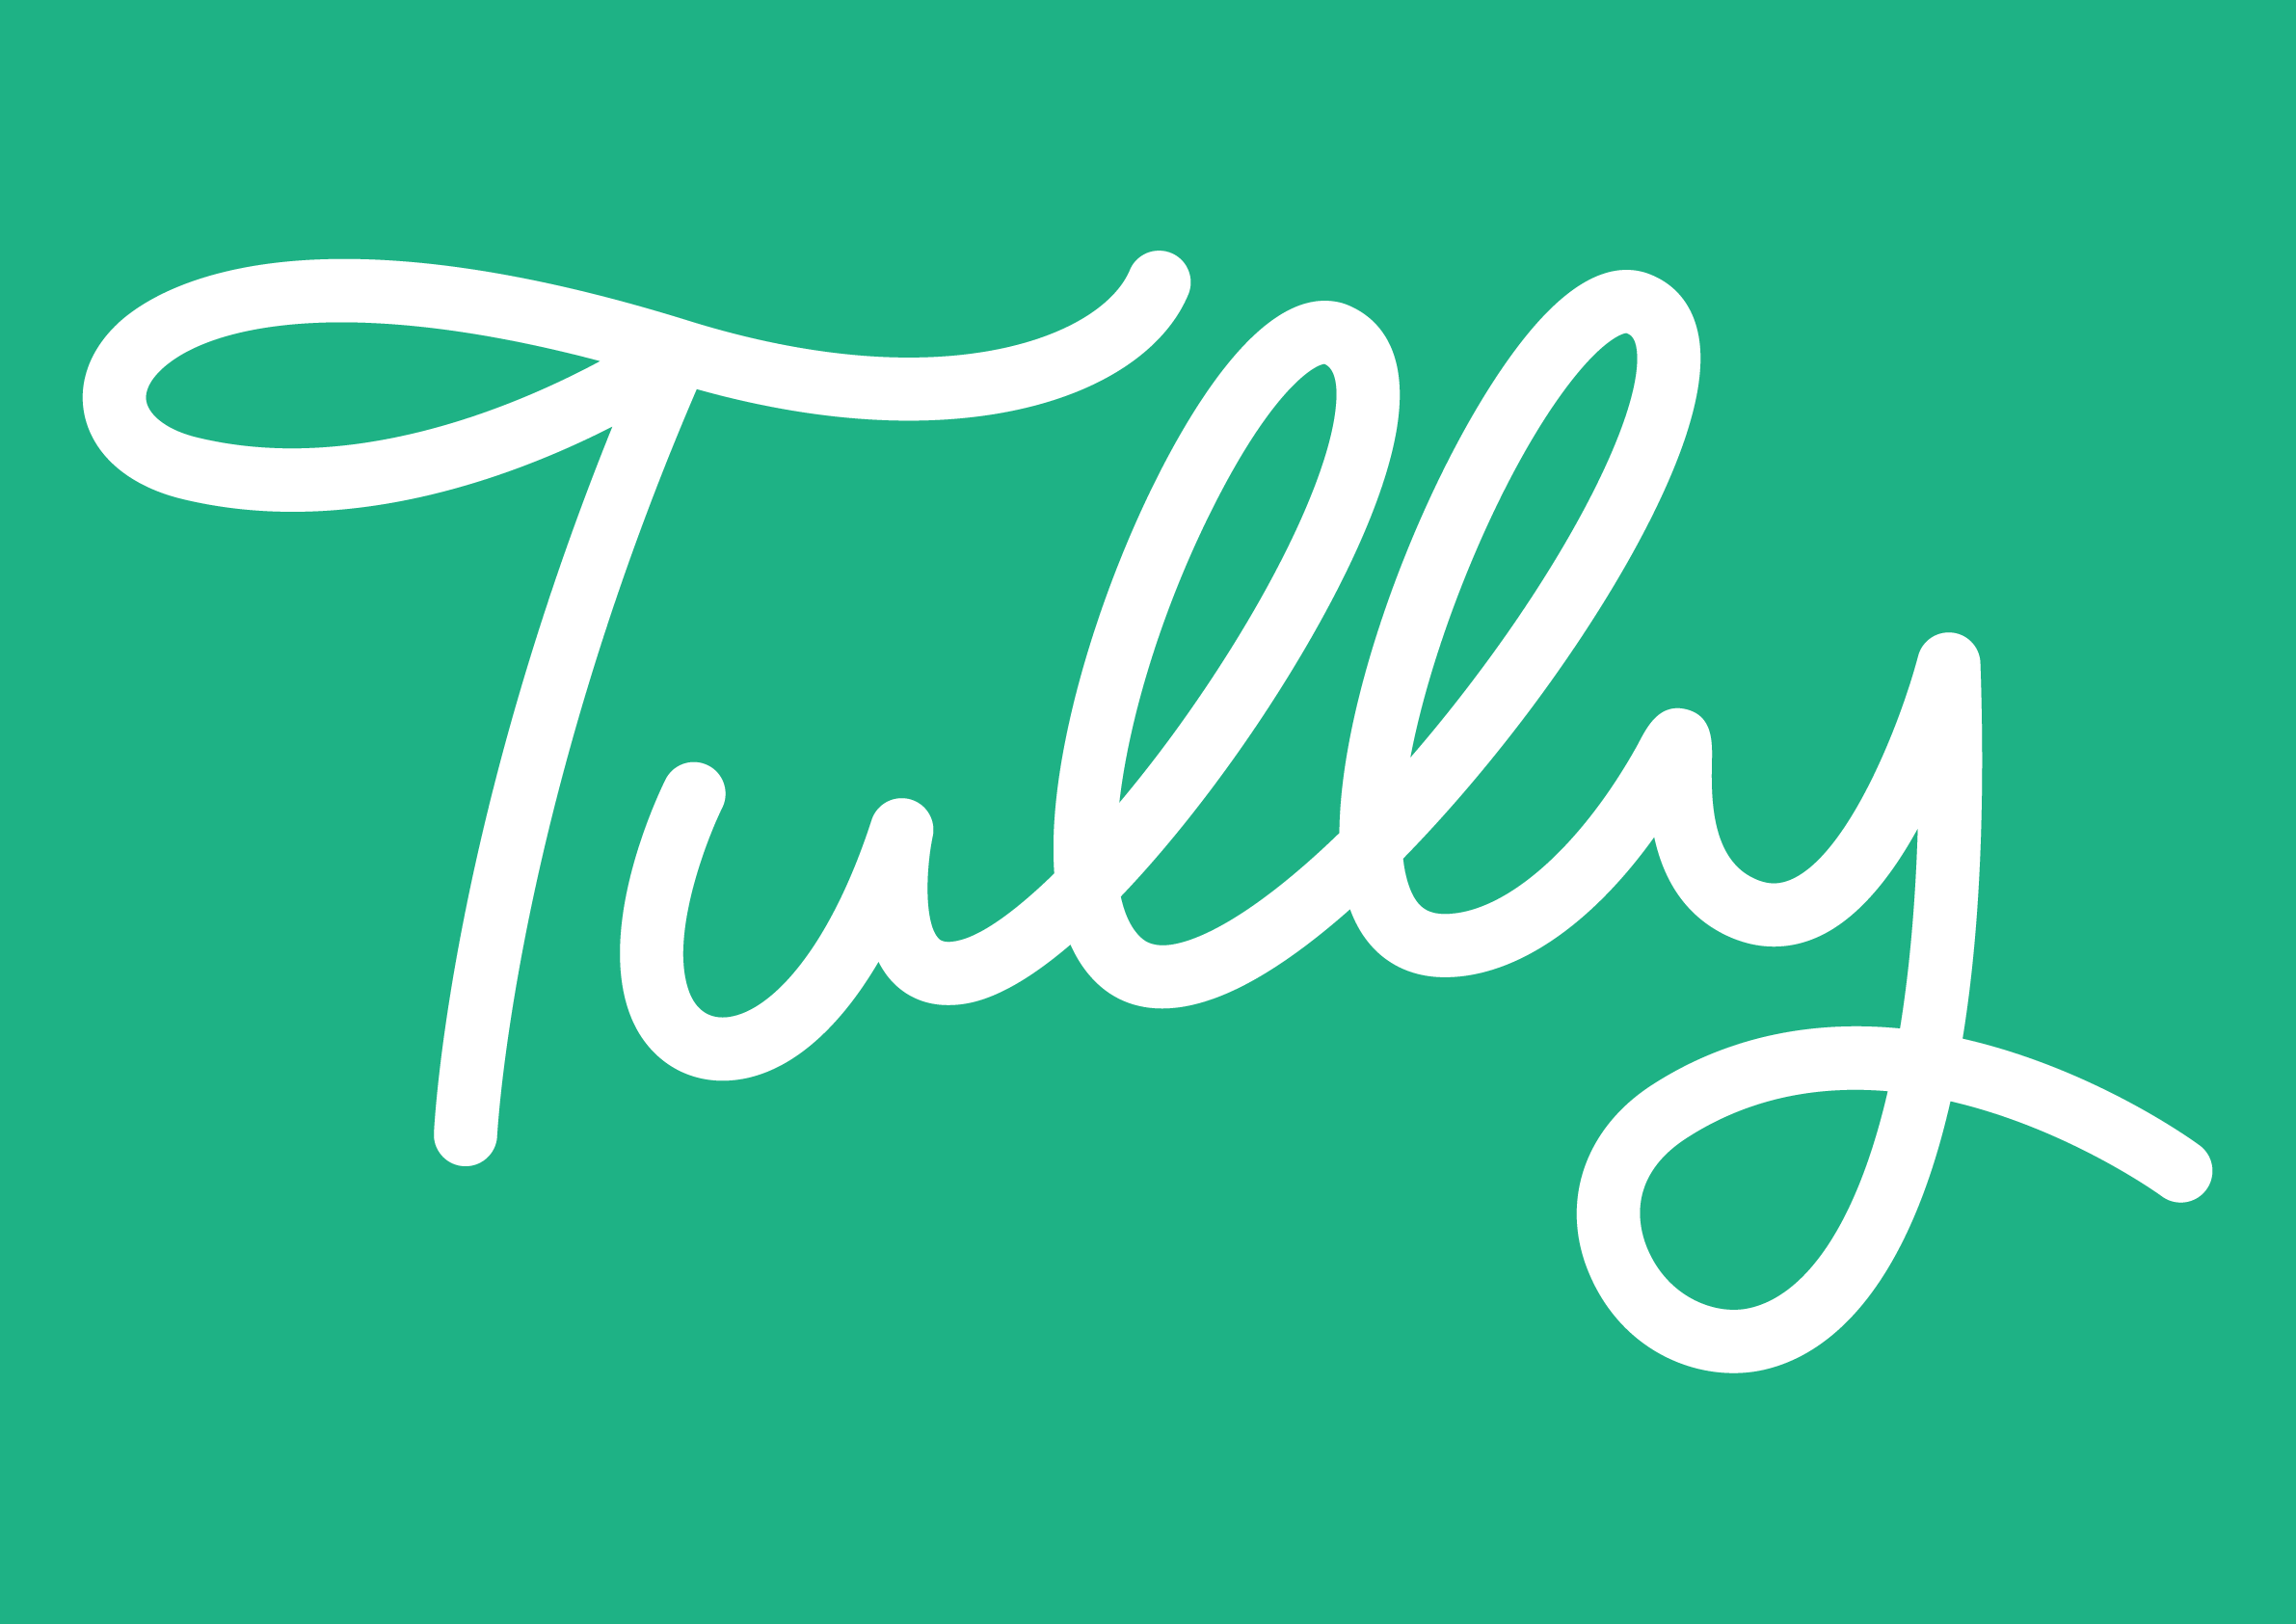 Tully-Flat-White-Forest1.png